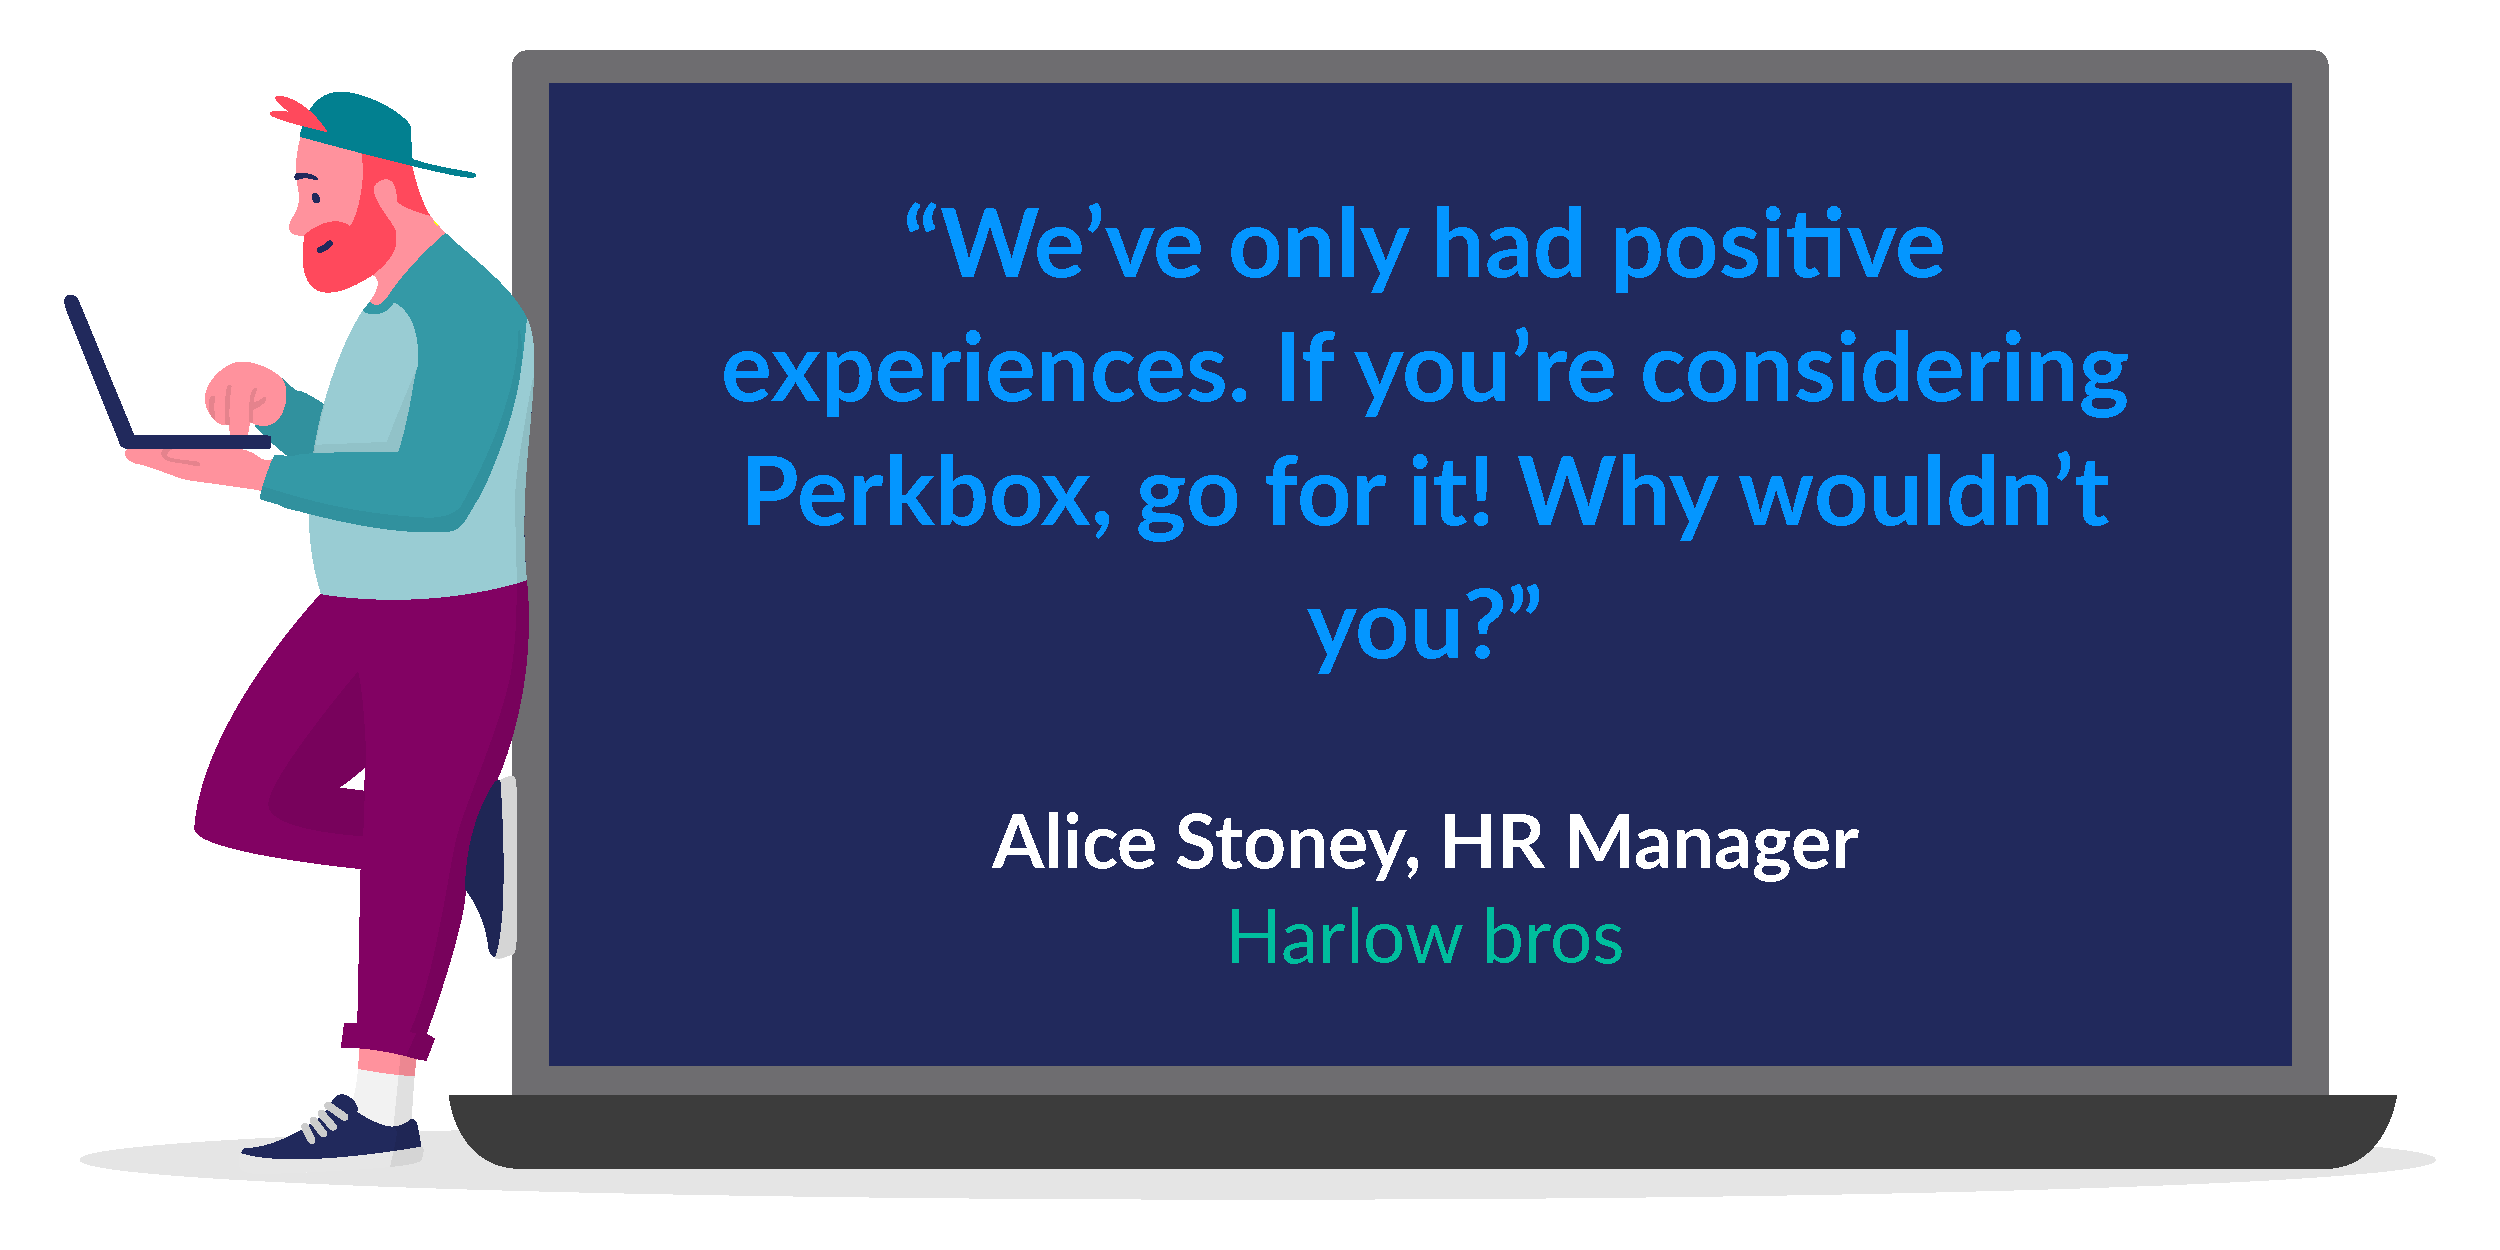 harlow bros quote